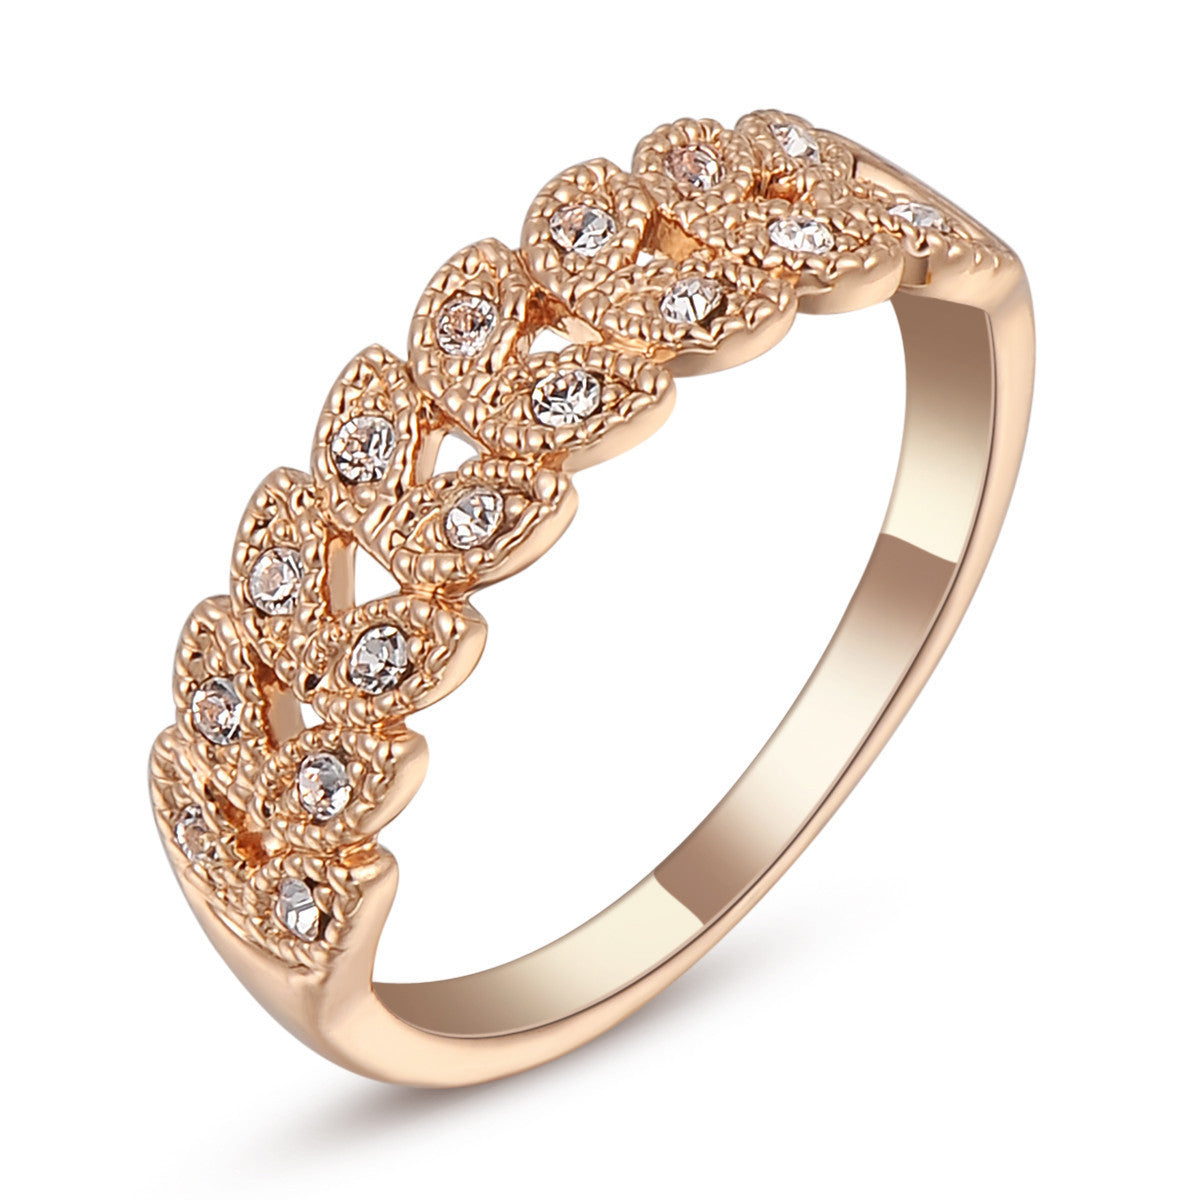 5.5 / Rose Gold PlatedReal Italina Rings for women Genuine Austrian Crystal 18K Rose Gold Plated Vintage Rings New Sale #RG95683Rose